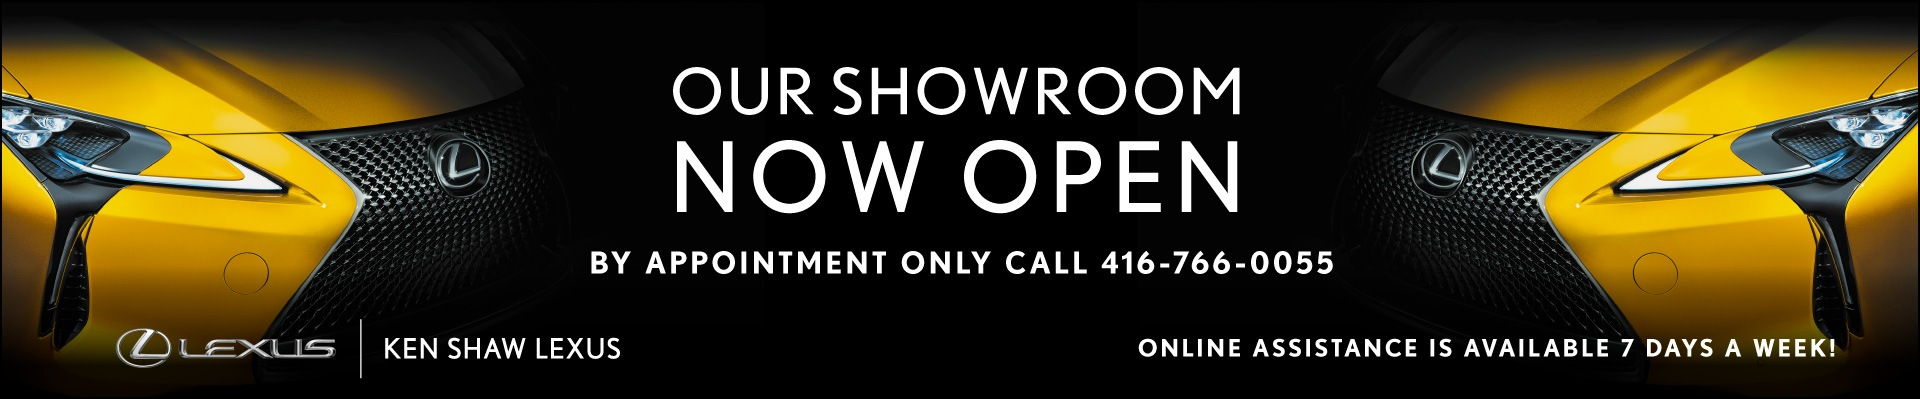 ken shaw lexus in toronto, ontario, gta showroom is open by appointment only covid-19 protocols